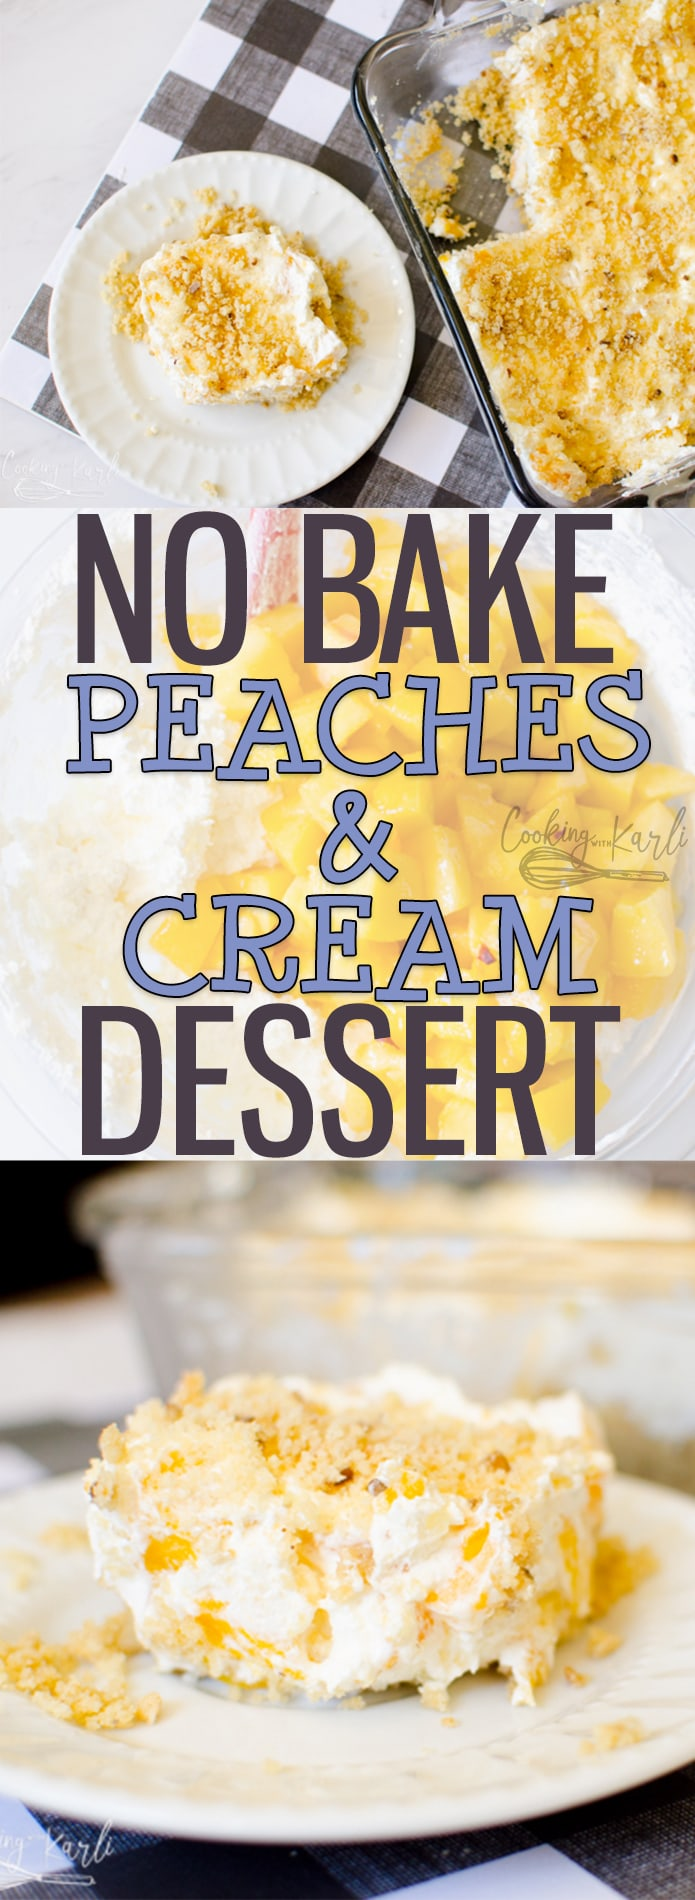 No Bake Peaches 'n Cream Dessert is packed full of fresh peaches, a peach infused creamy filling with a sweet Pecan Cookie Crust. This dessert is perfect for a summer night, weekend party or potluck! |Cooking with Karli| #nobake #dessert #peachesandcream #peach #cream #recipe #summerdessert #bbq #party